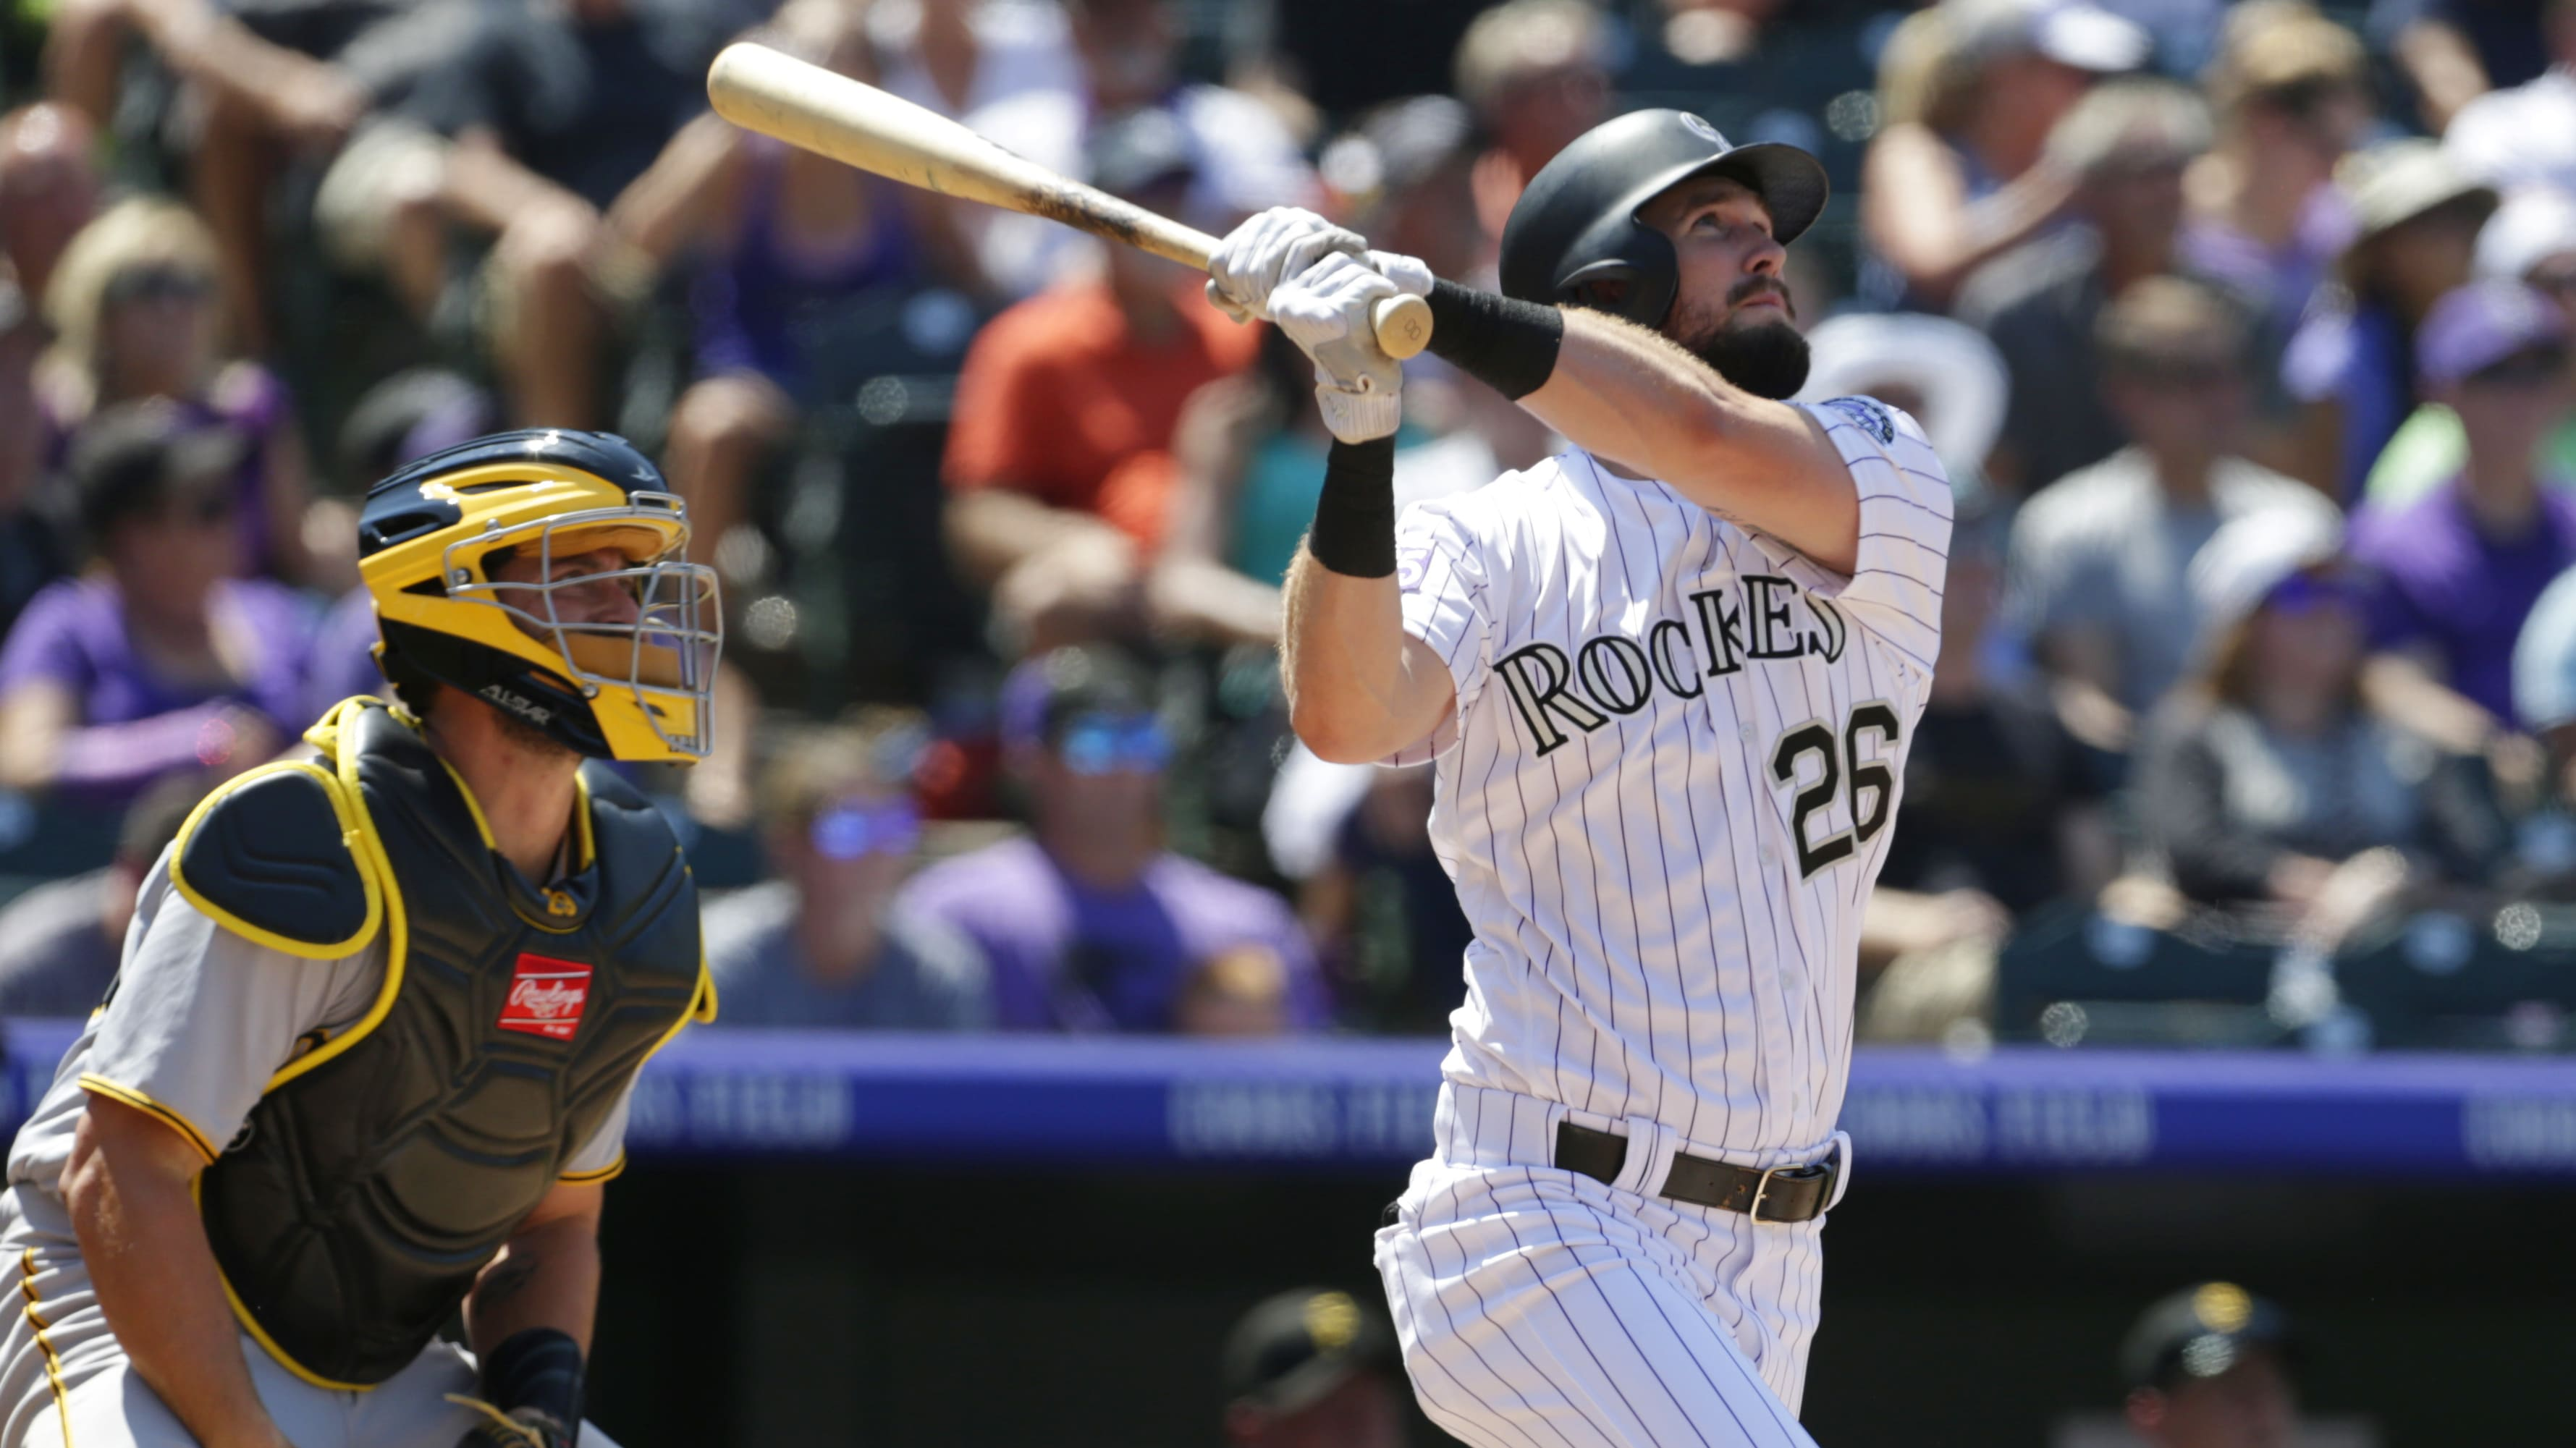 DENVER, CO - AUGUST 08: Francisco Cervelli #29 of the Pittsburgh Pirates watches as David Dahl #26 of the Colorado Rockies hits a two-run home run in the fourth inning at Coors Field on August 8, 2018 in Denver, Colorado. (Photo by Joe Mahoney/Getty Images)